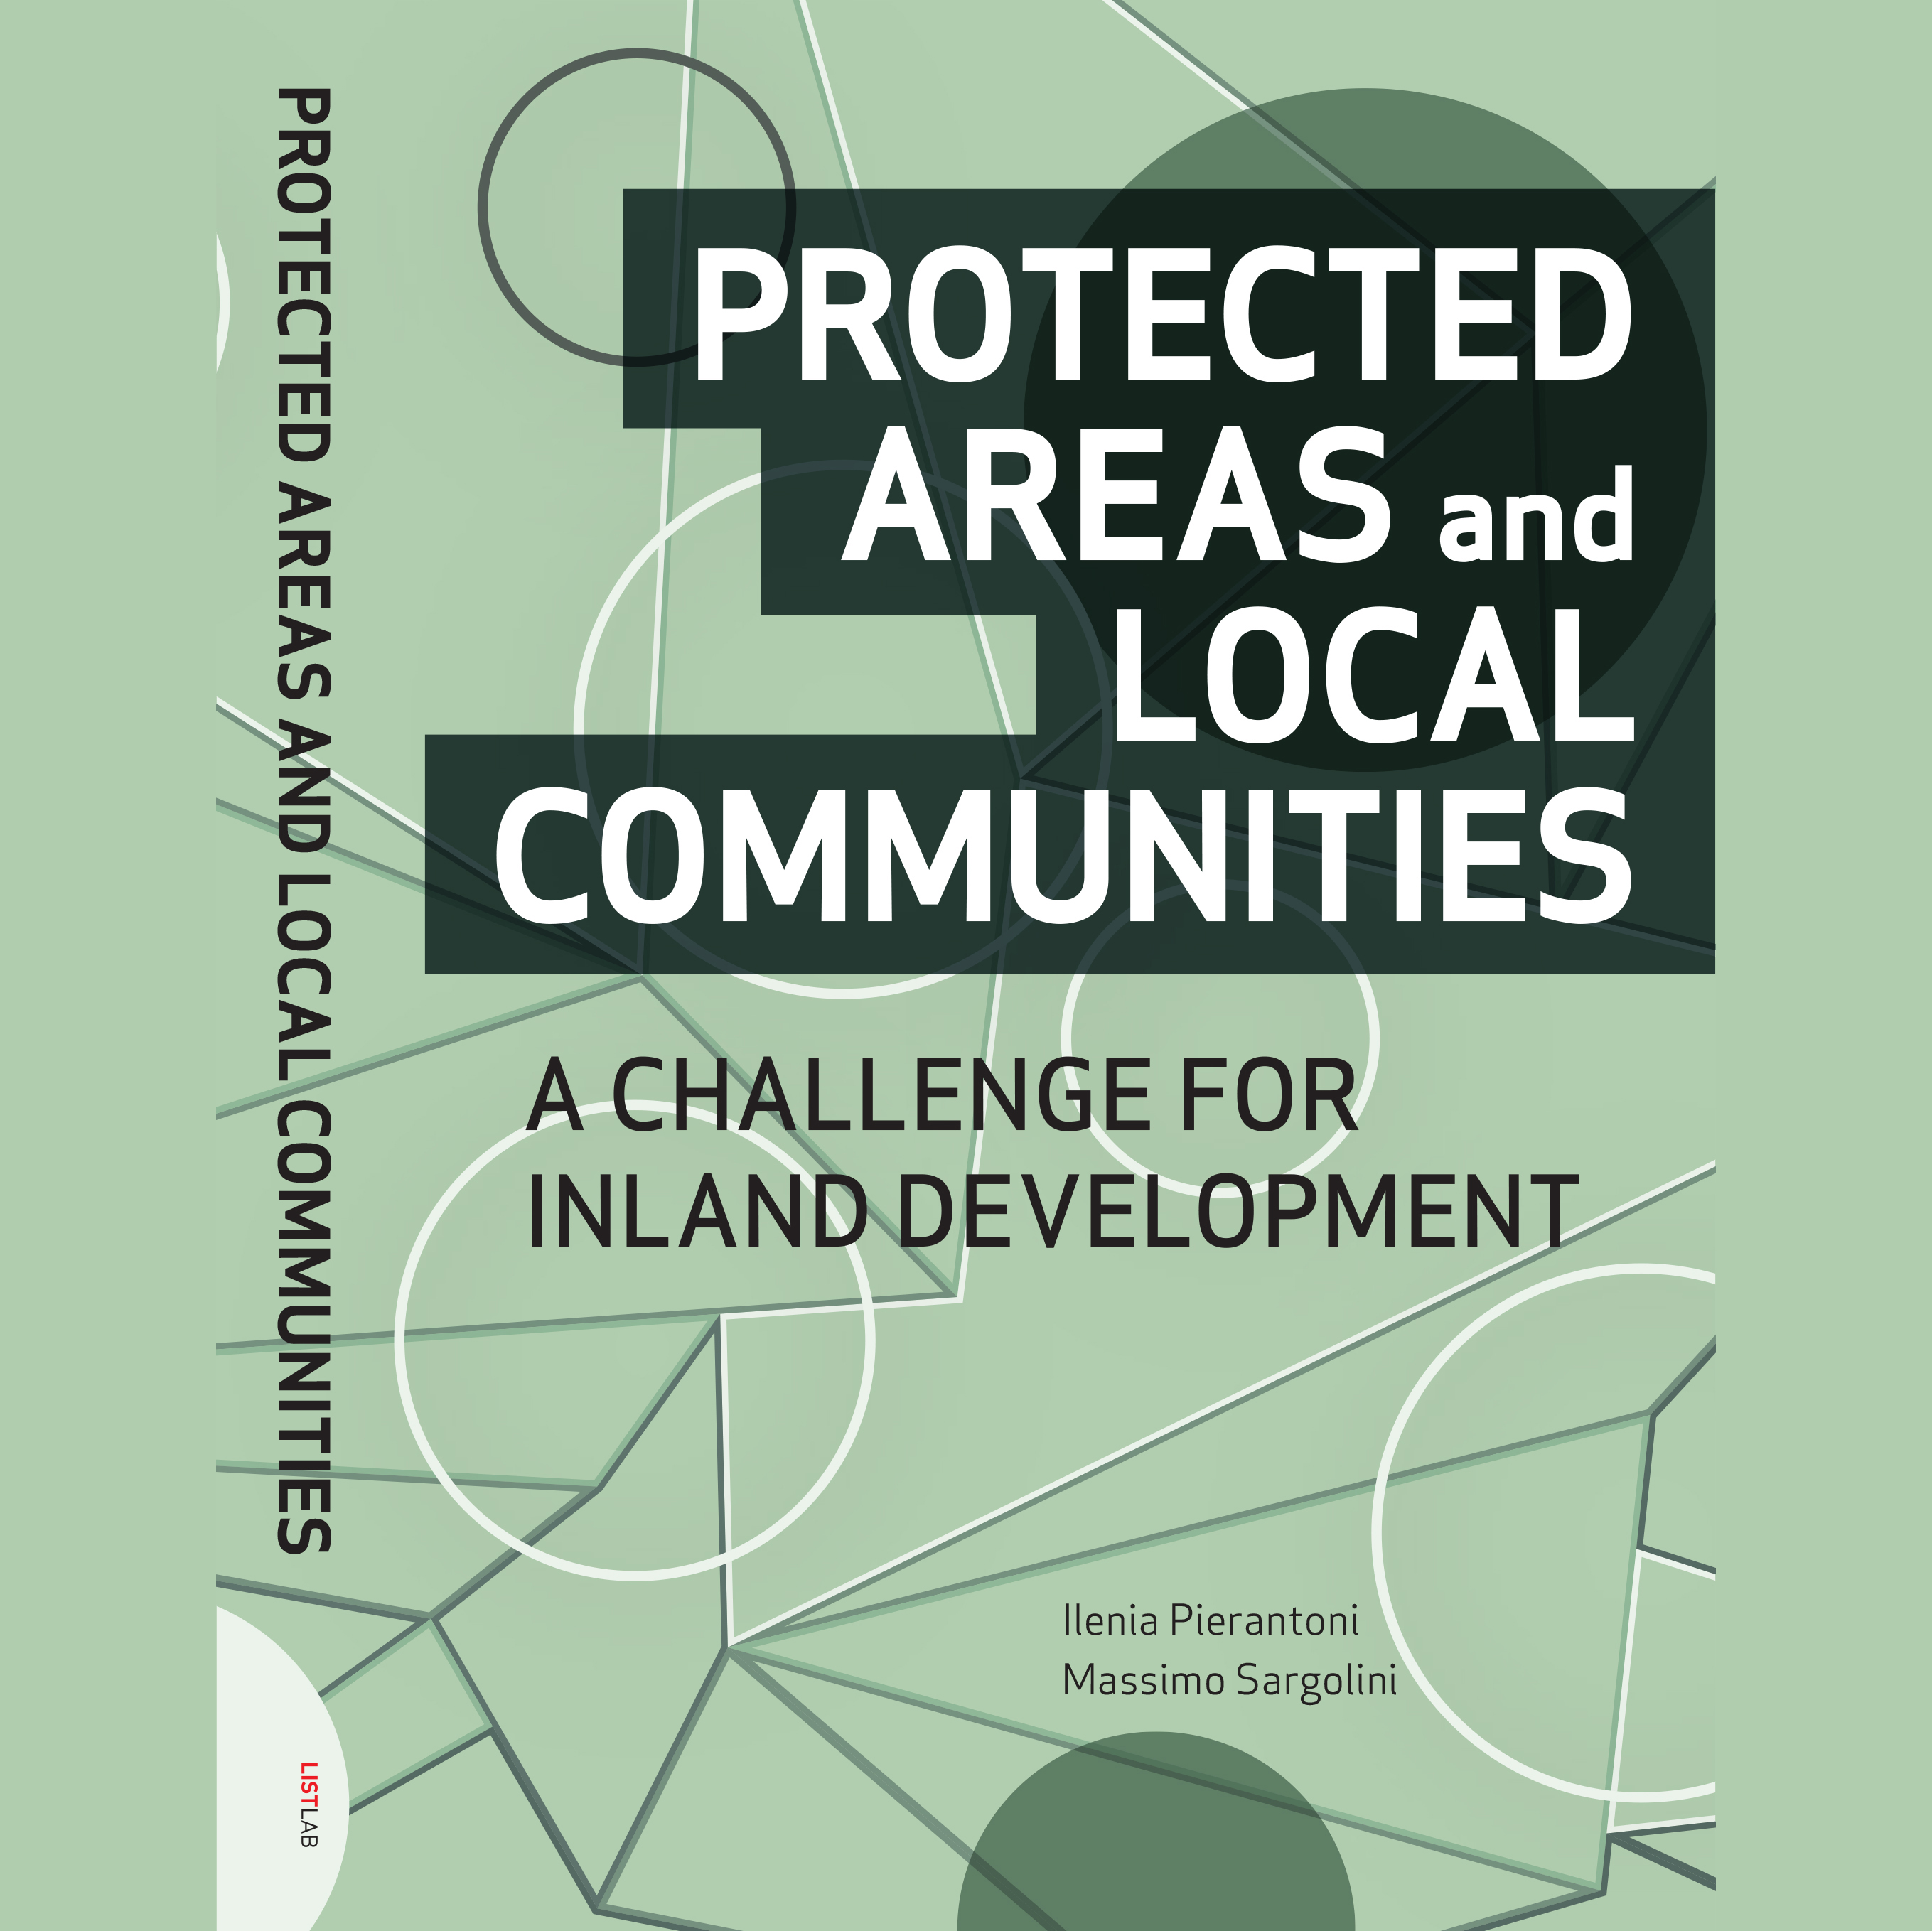 Protected areas and local communities. A challenge for inland development Ilenia Pierantoni,Massimo Sargolini